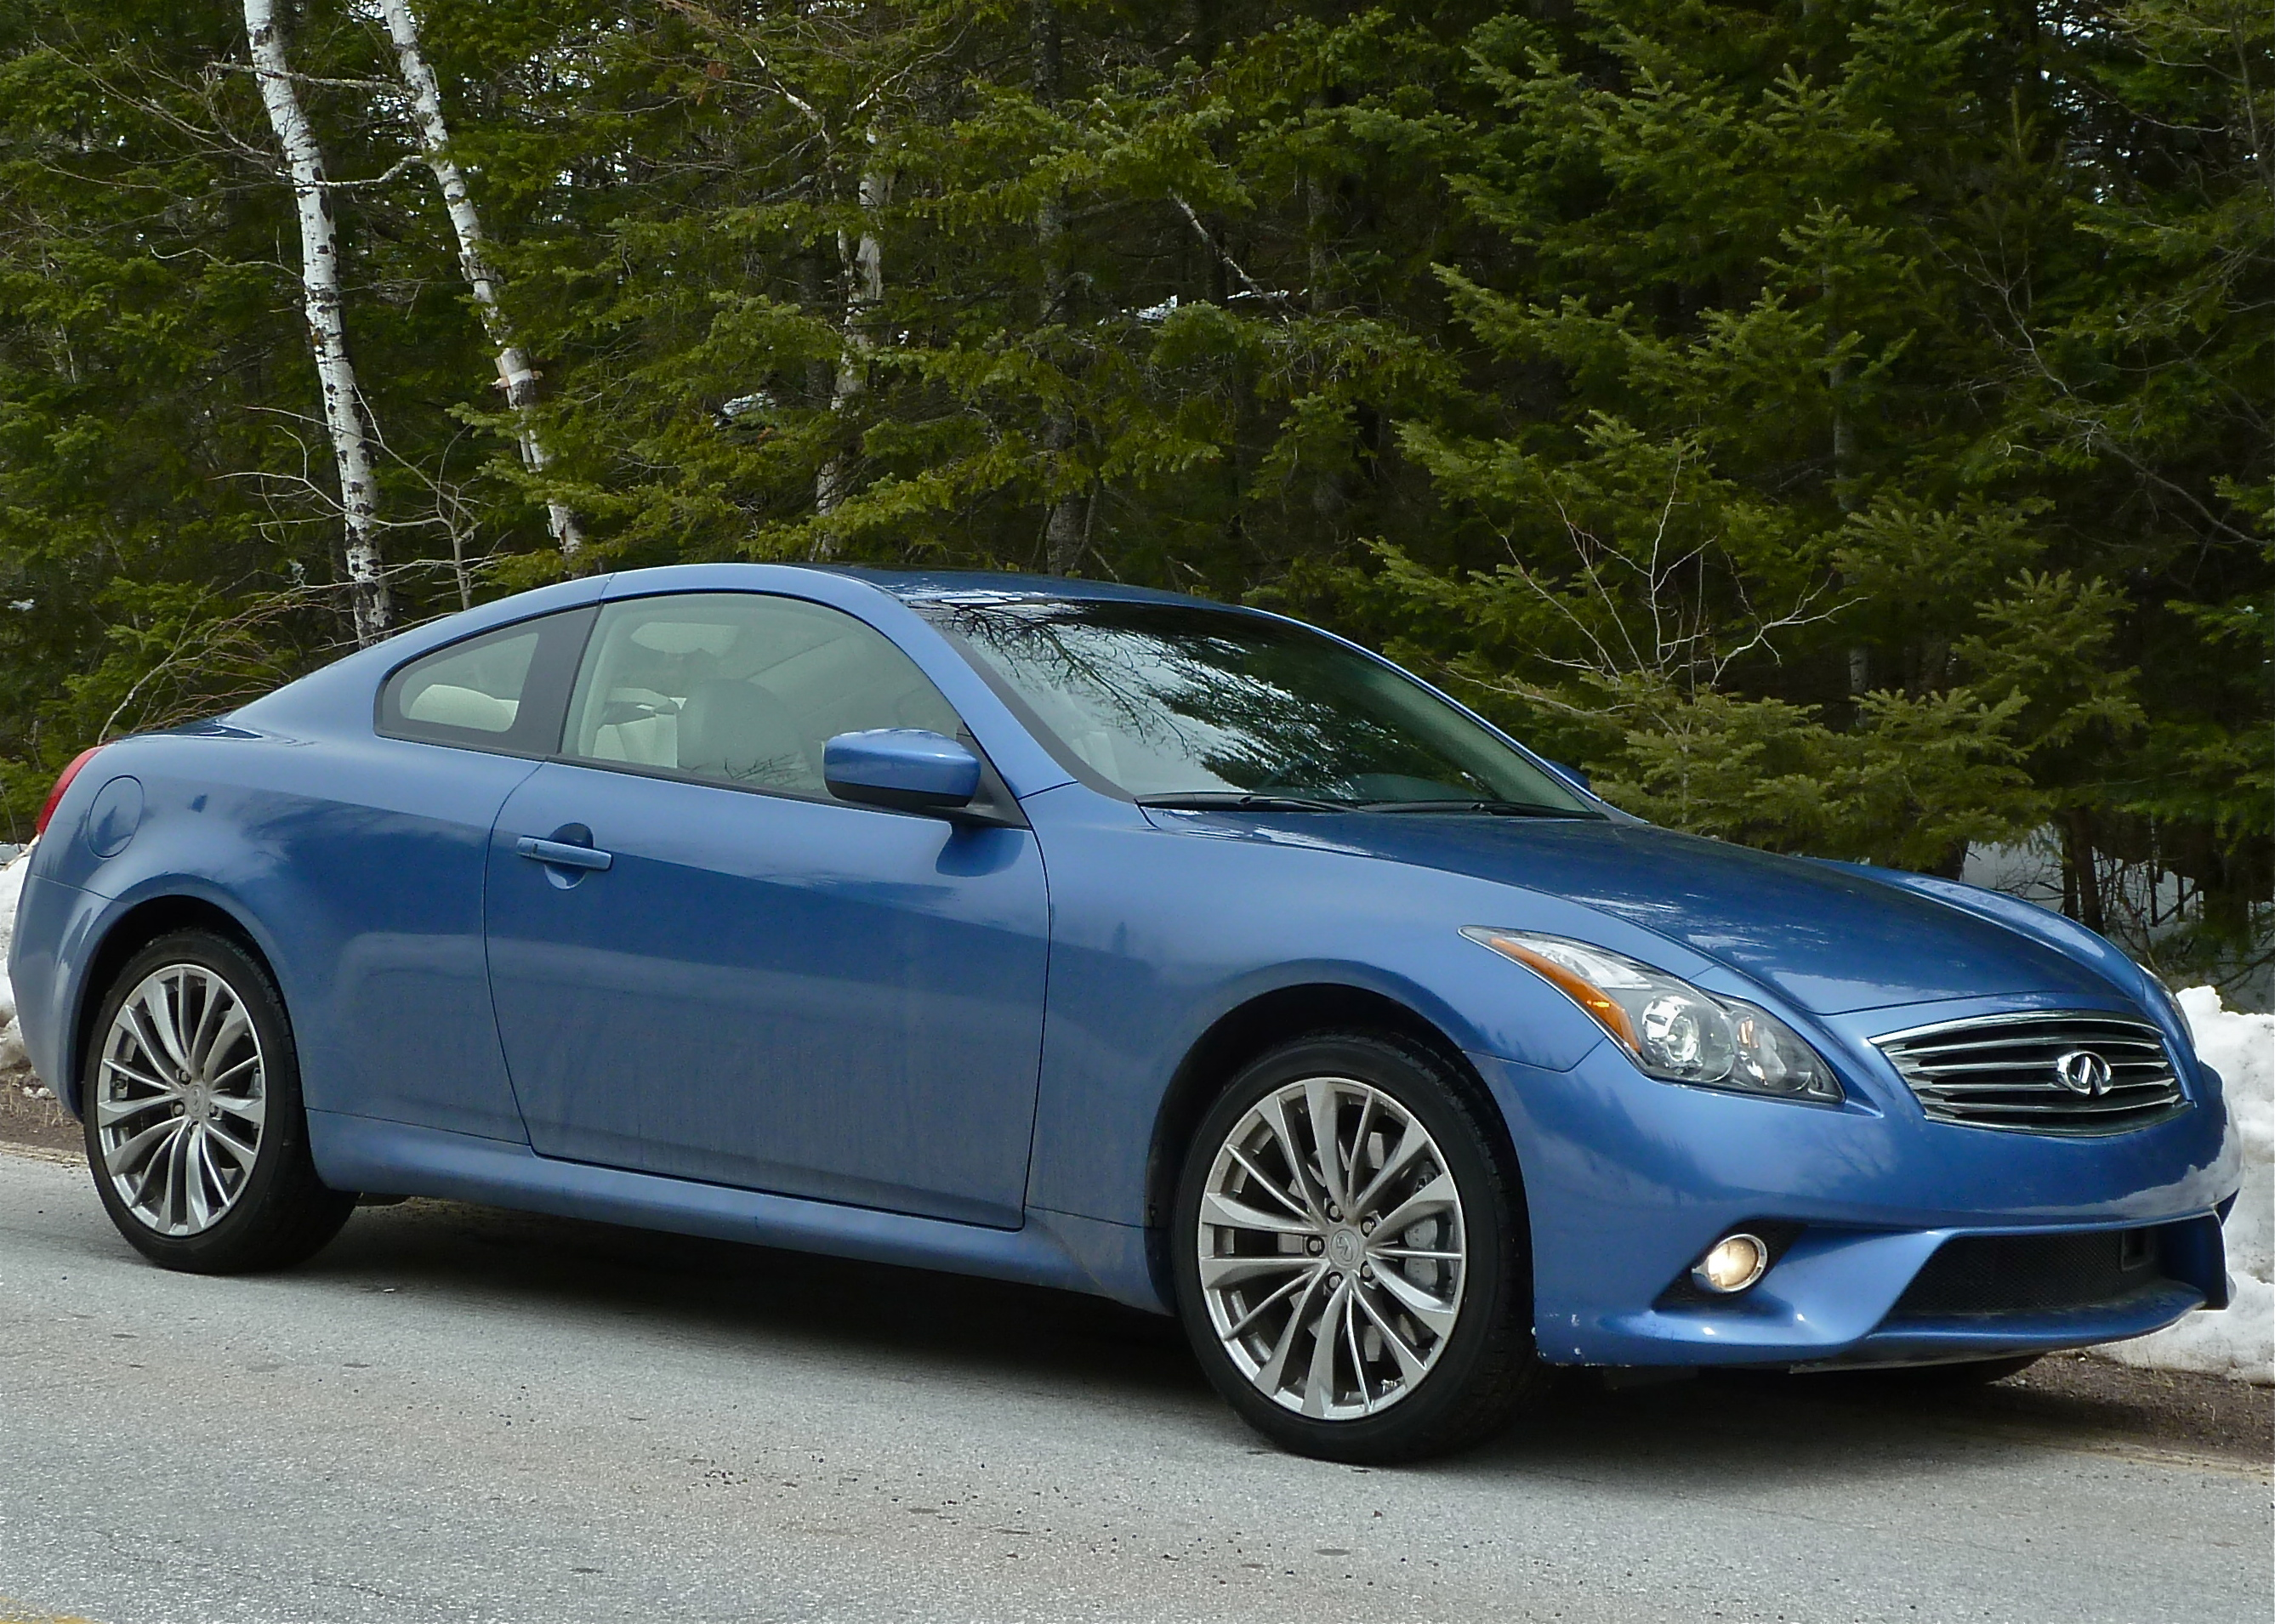 Infiniti G37x S Coupe Smoothly Covers All Seasons New Car Picks